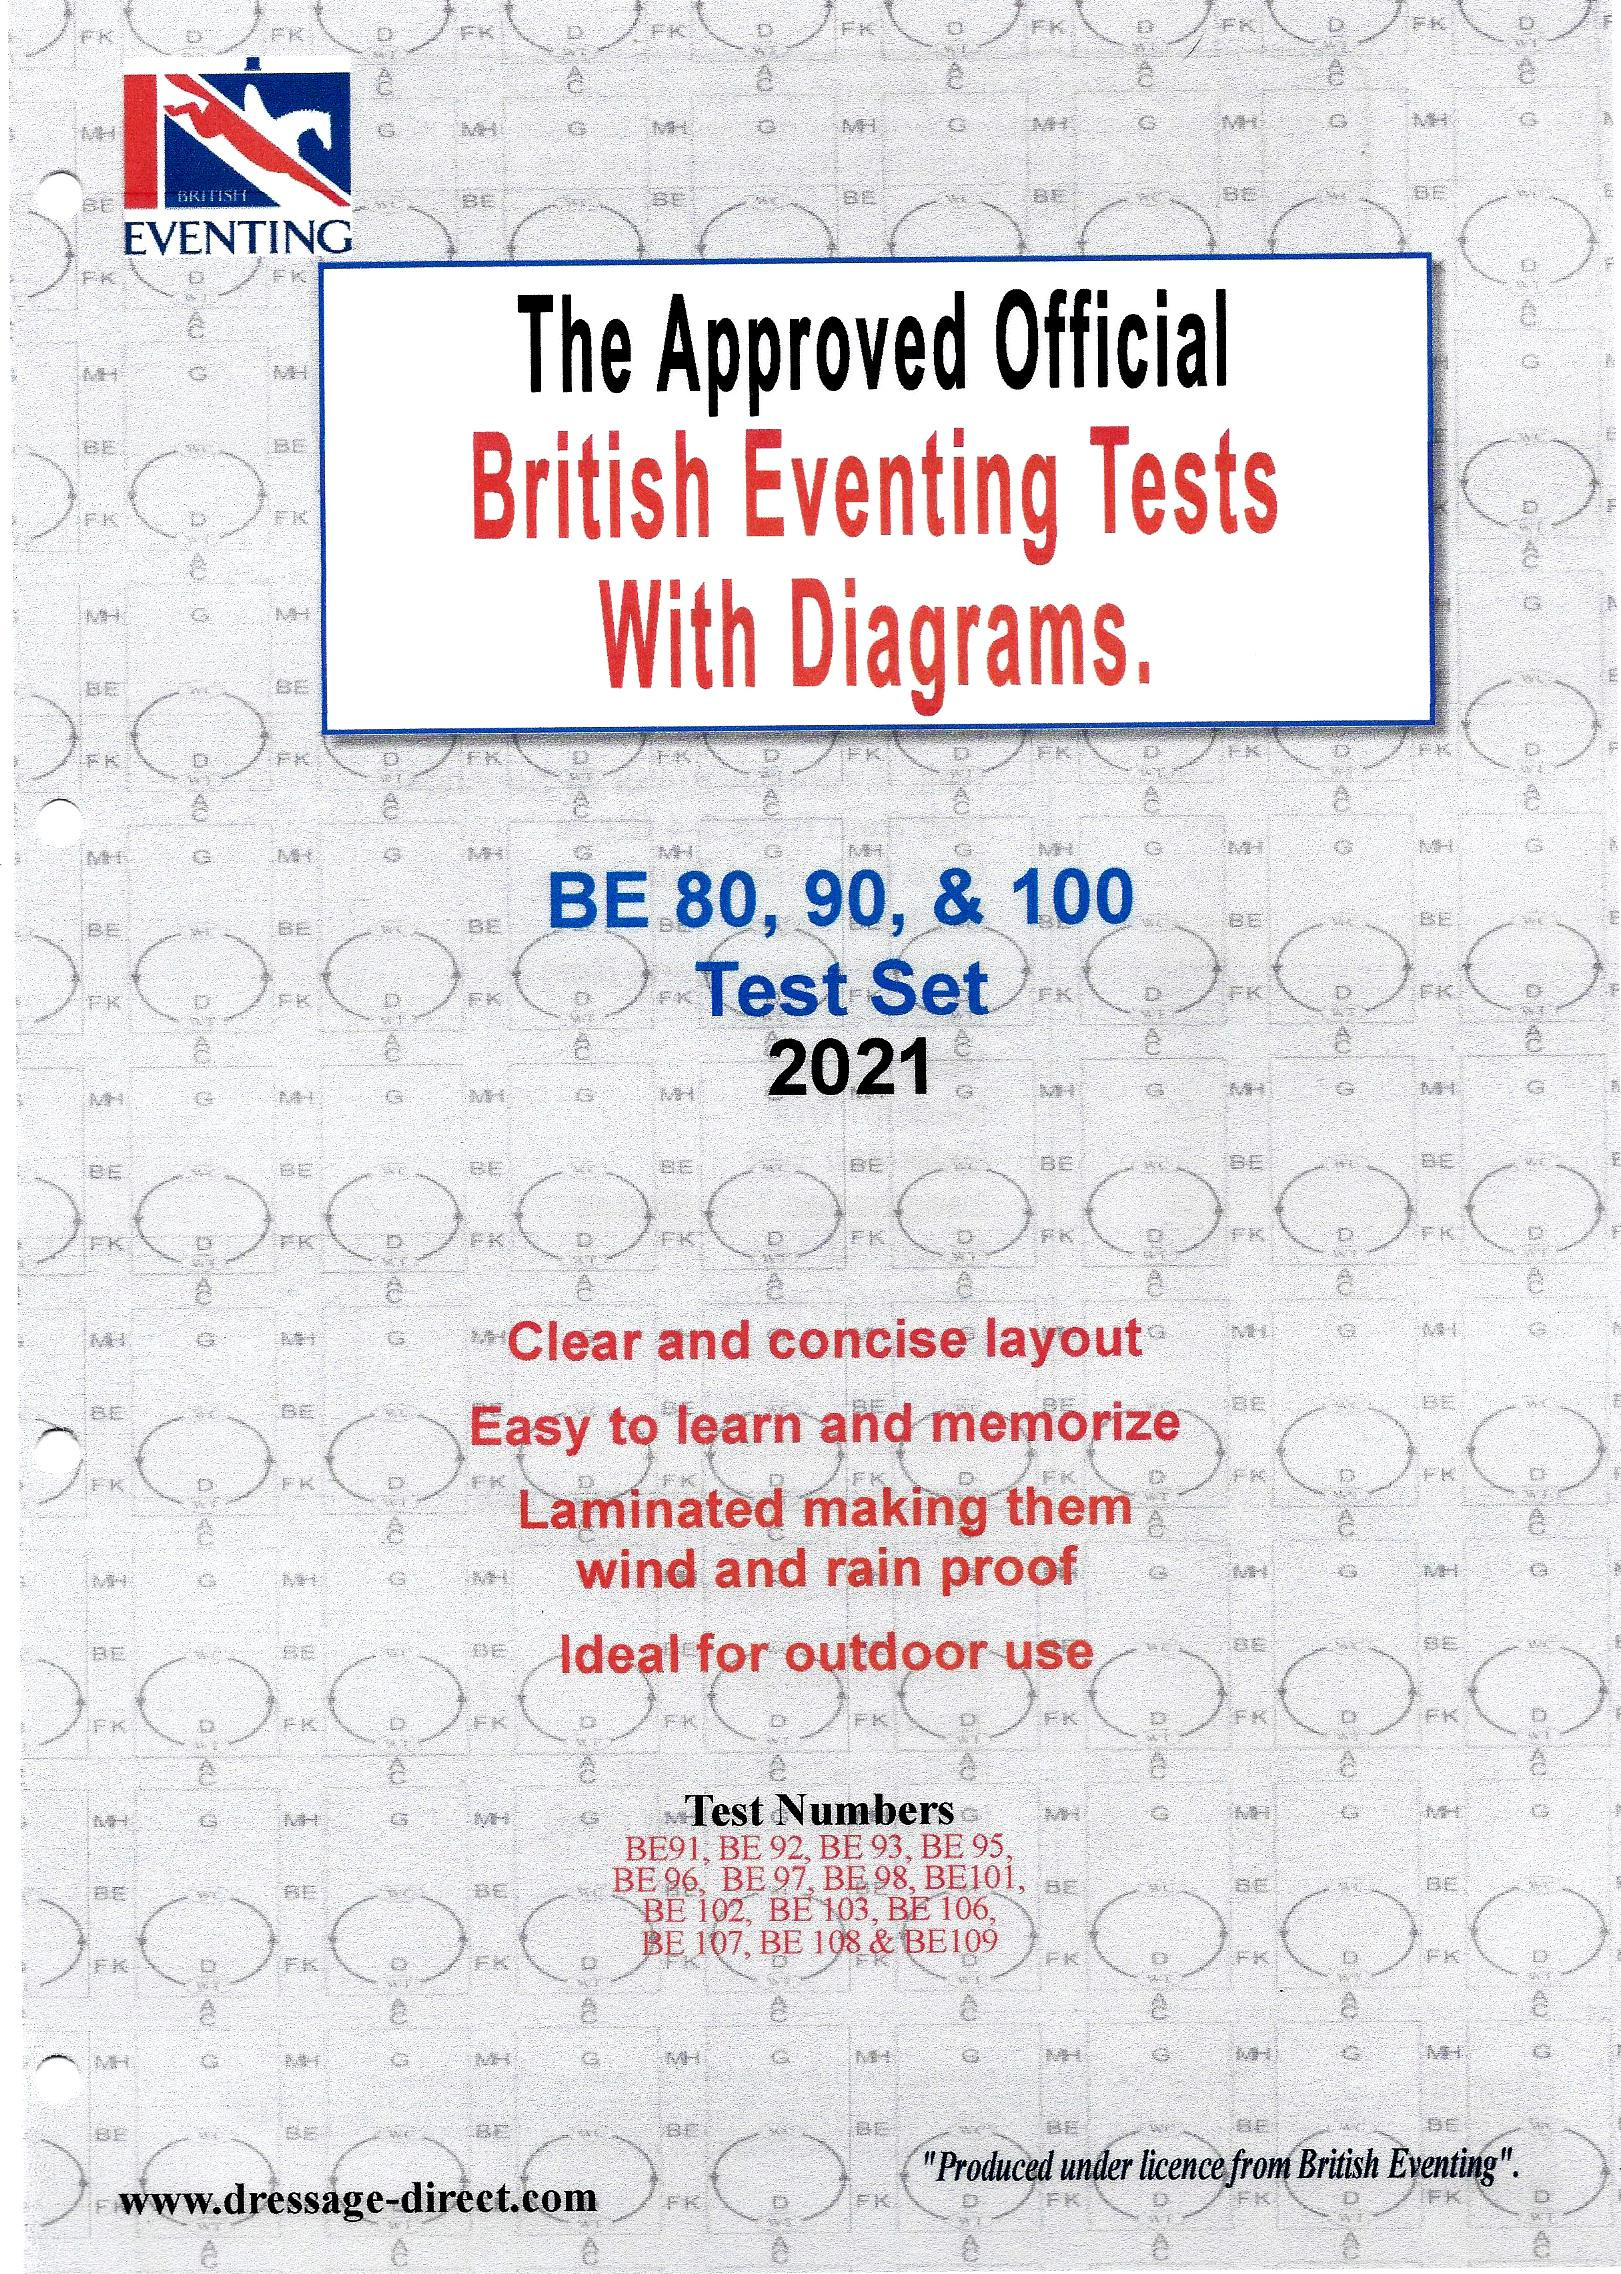 British Eventing 2021 BE 80, 90 and 100 Dressage Tests Set with Diagrams from Trot-Online